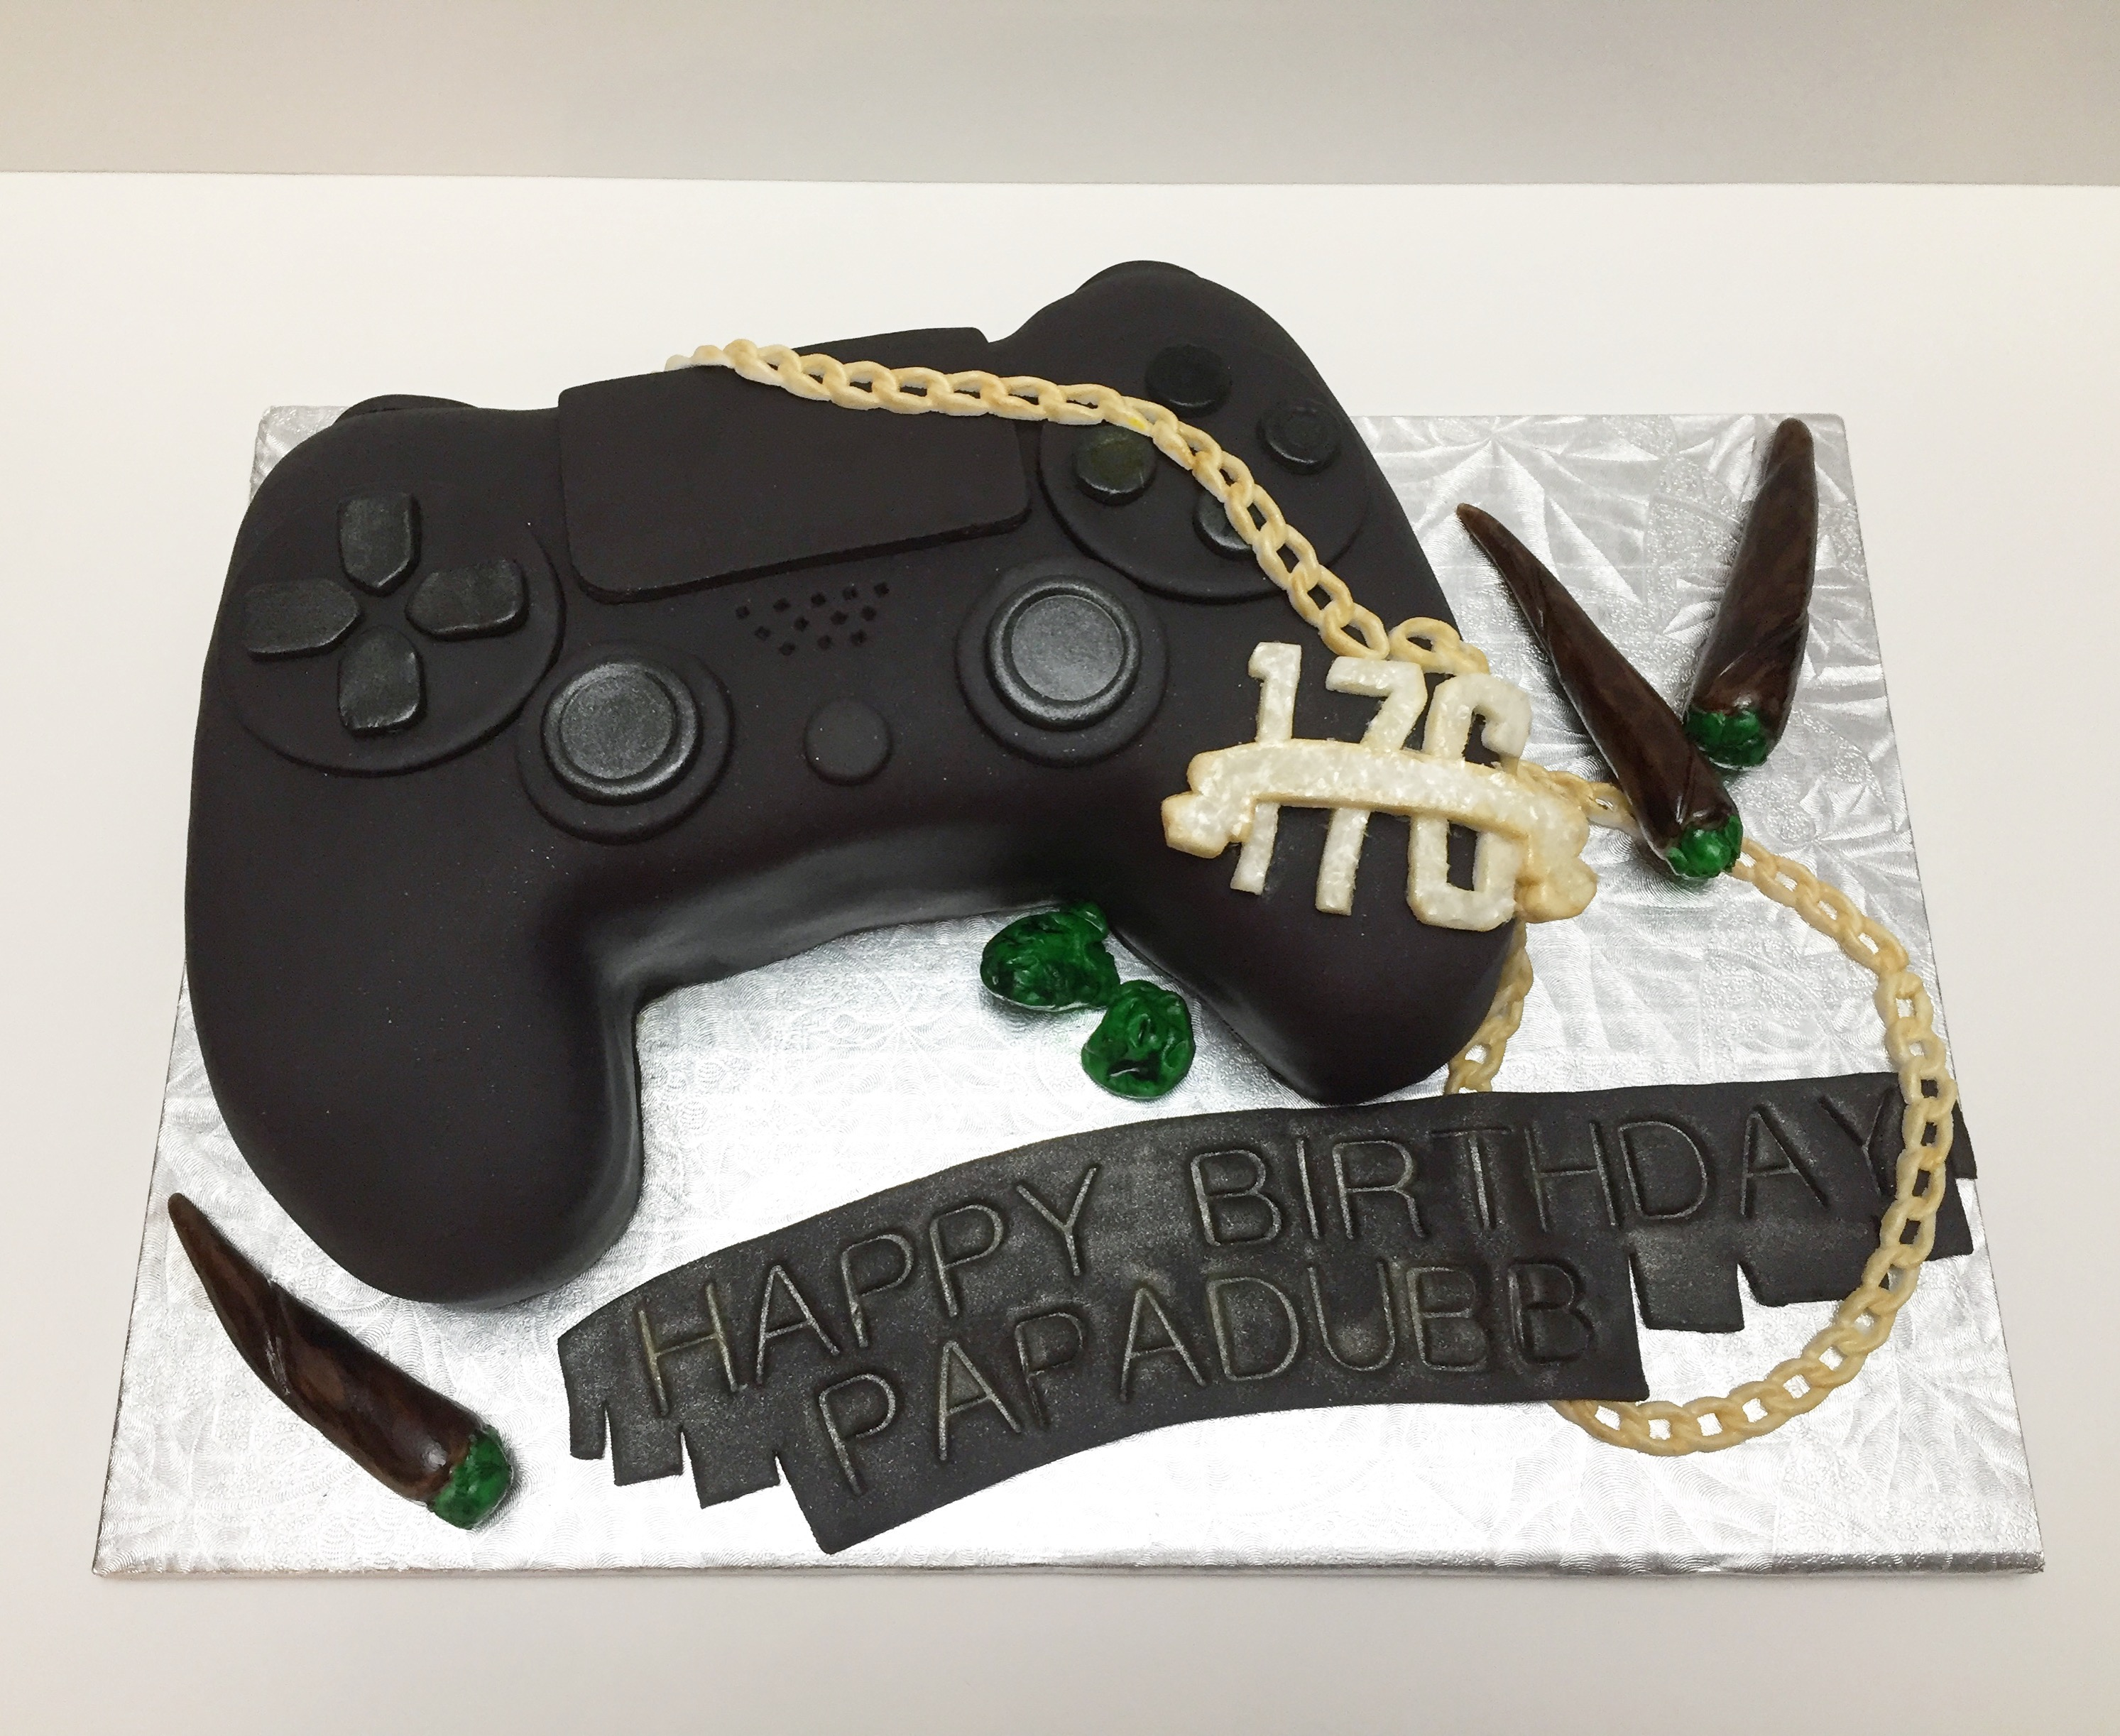 PS4 Controller Cake Delicacy Bakery